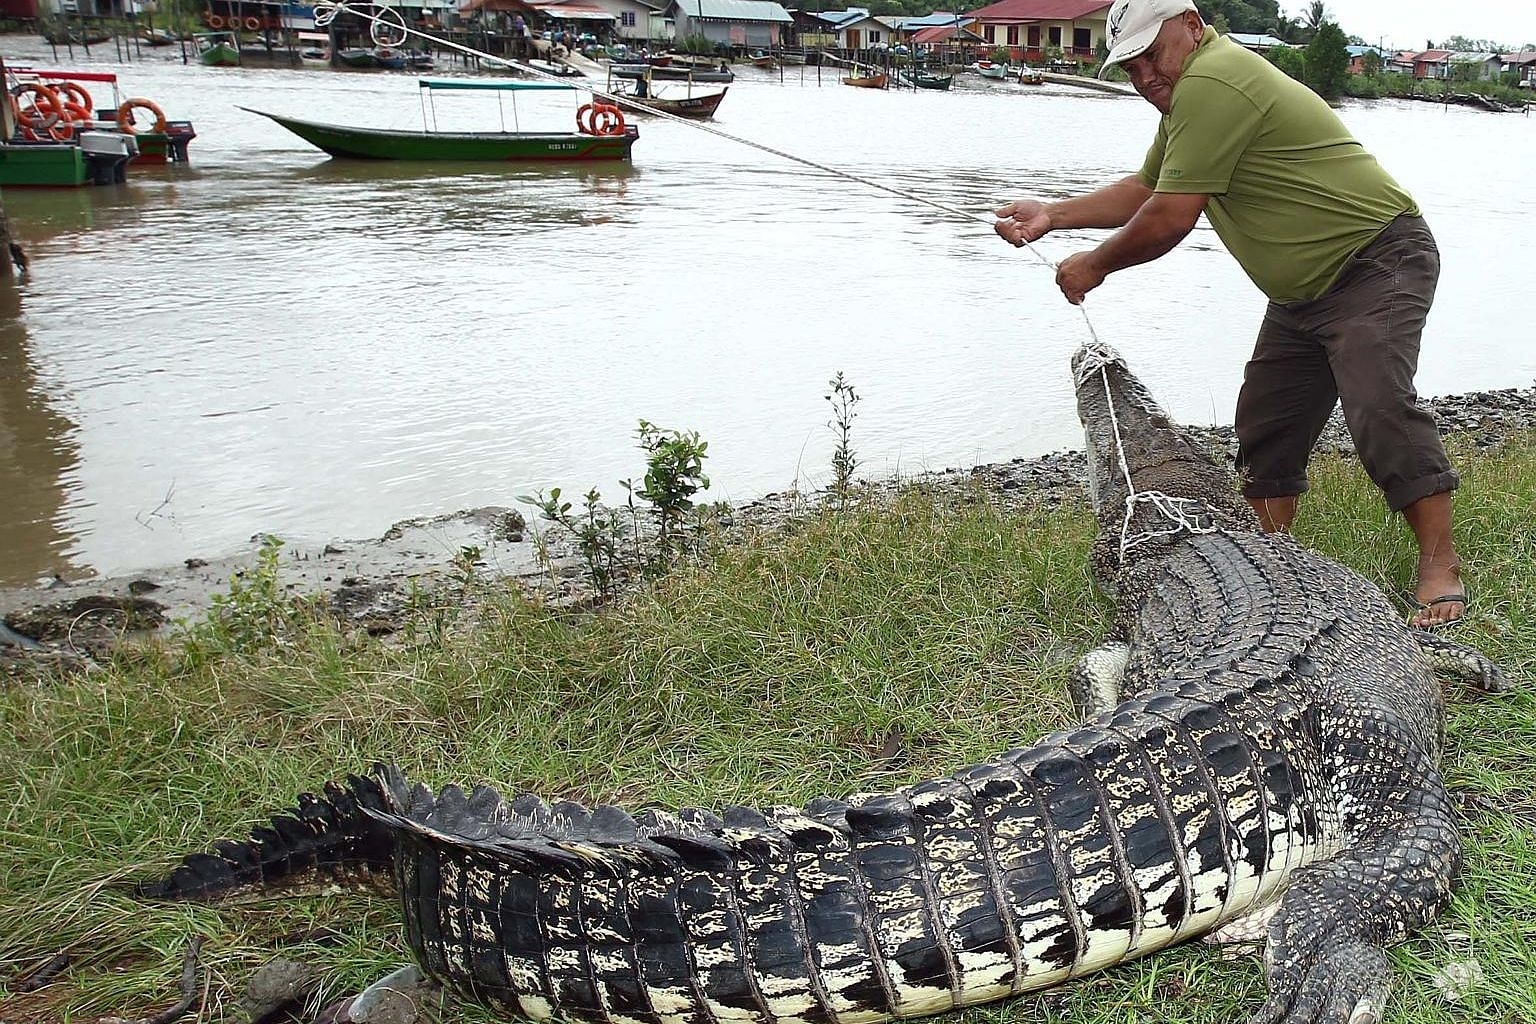 As the crocodile population rises in Sarawak, the reptiles cross paths often with residents. In this March 2015 case in Kuching, the crocodile had died after getting caught in a fisherman's net.